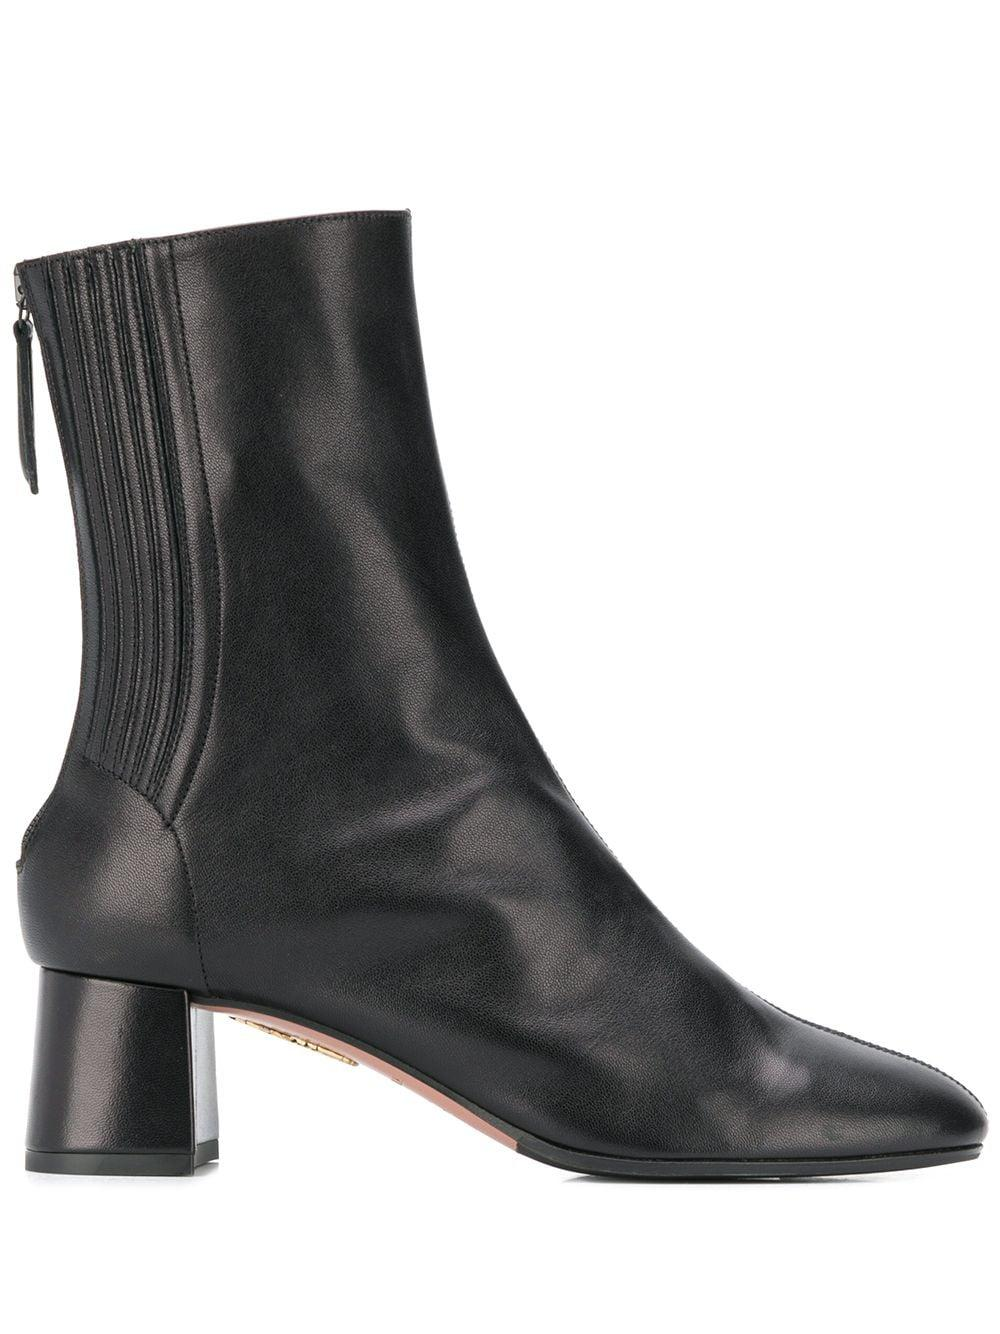 Saint Honore 50mm Bootie